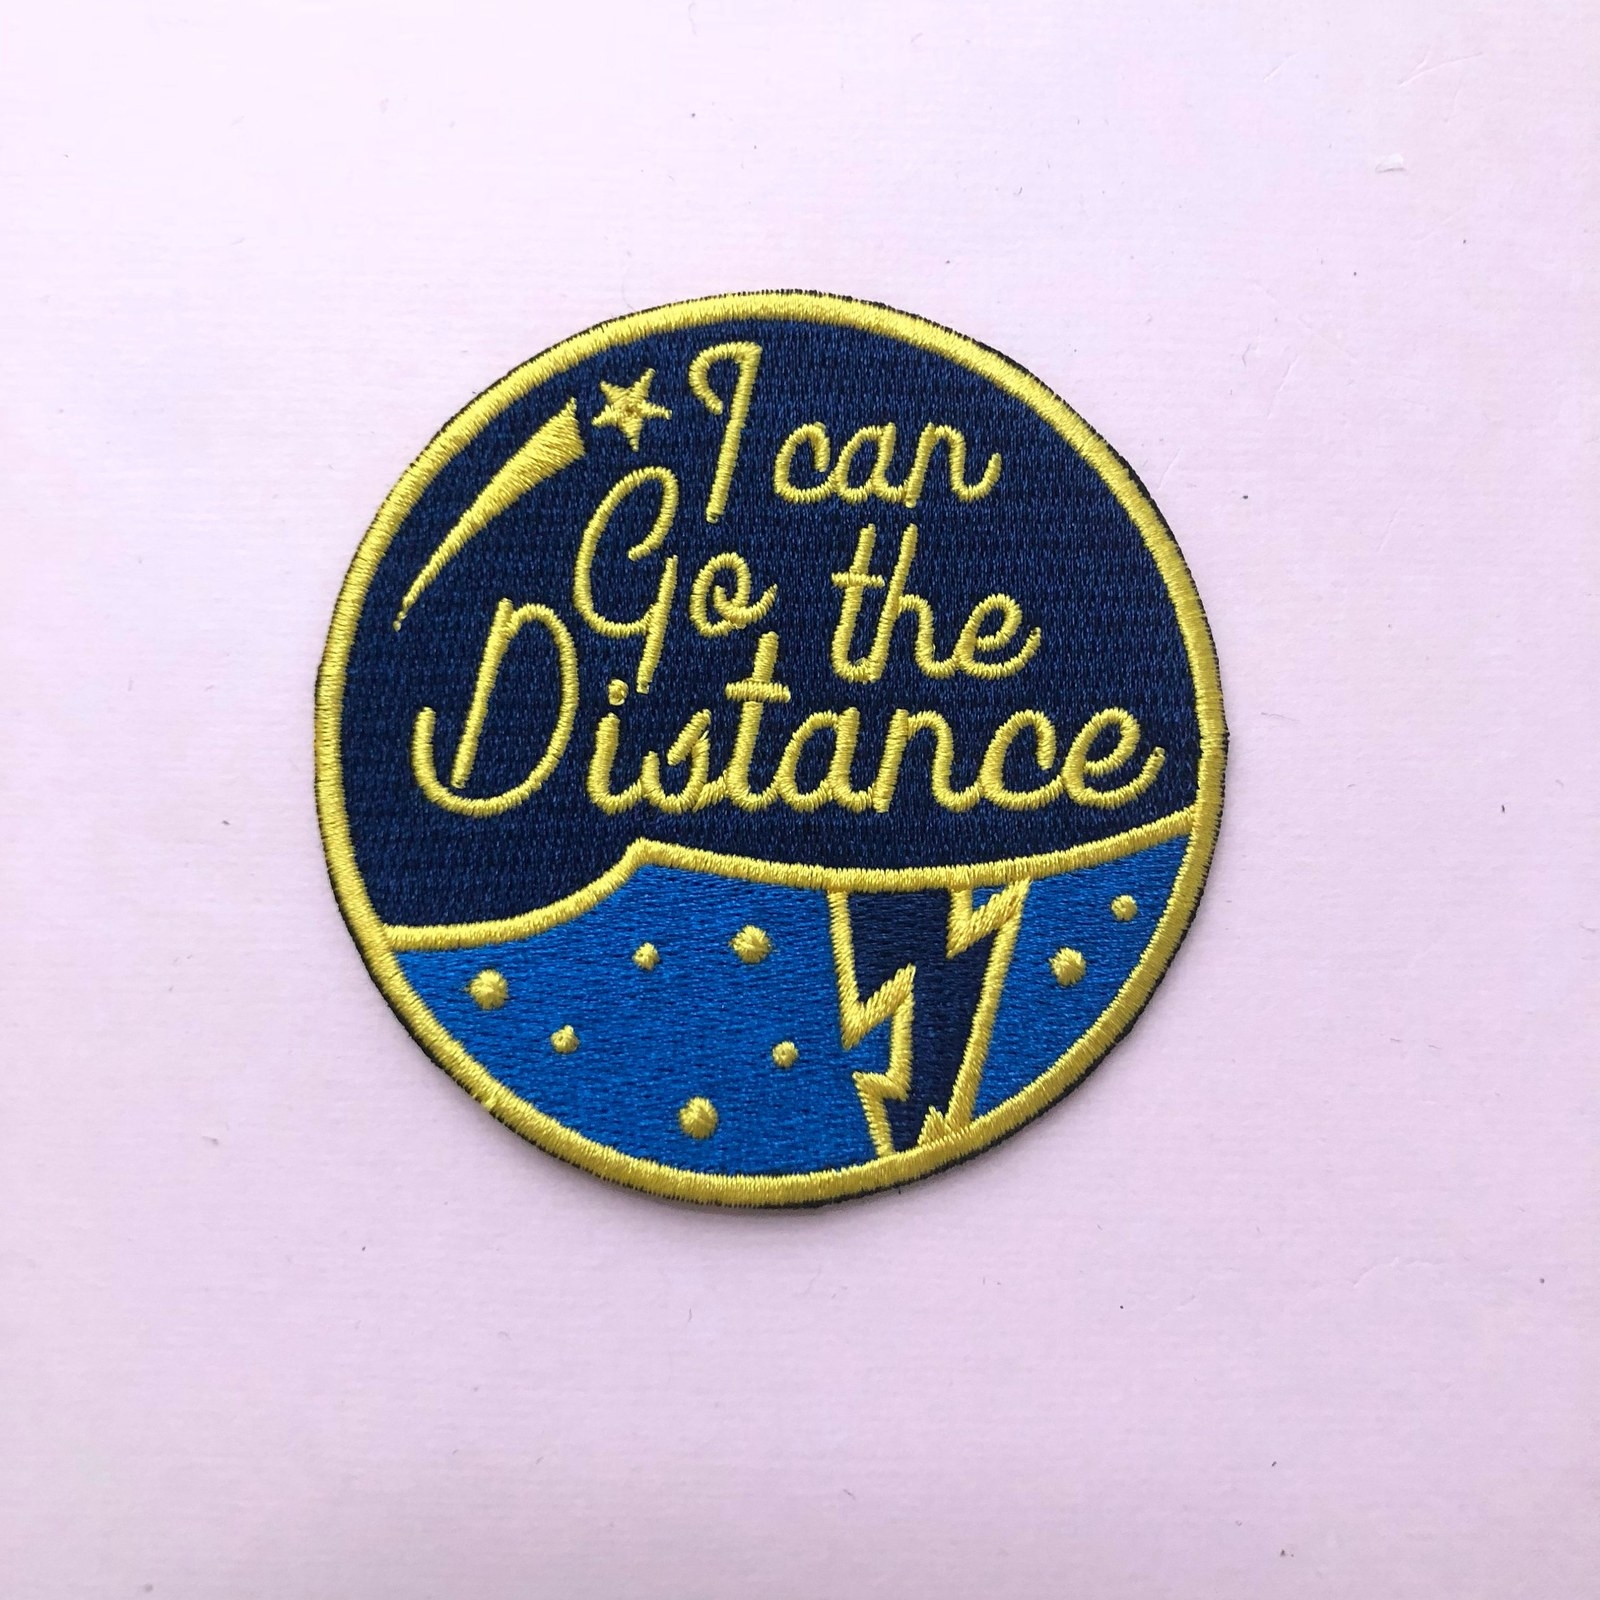 """a round patch that says """"i can go the distance"""" with a lightning bolt under it"""